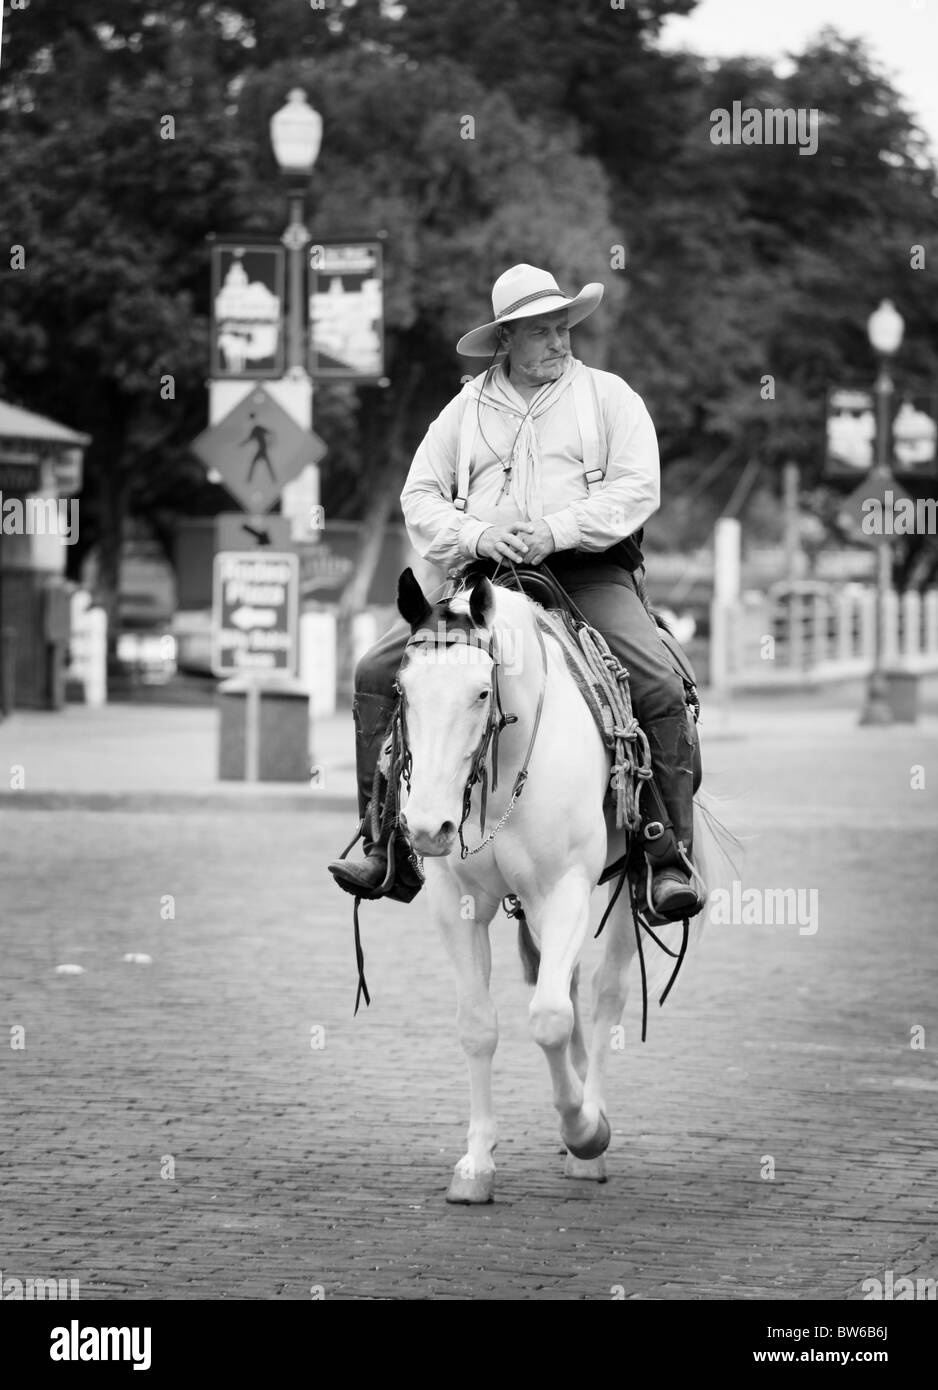 Cowboy riding through the Stock Yards at Fort Worth, Texas - Stock Image